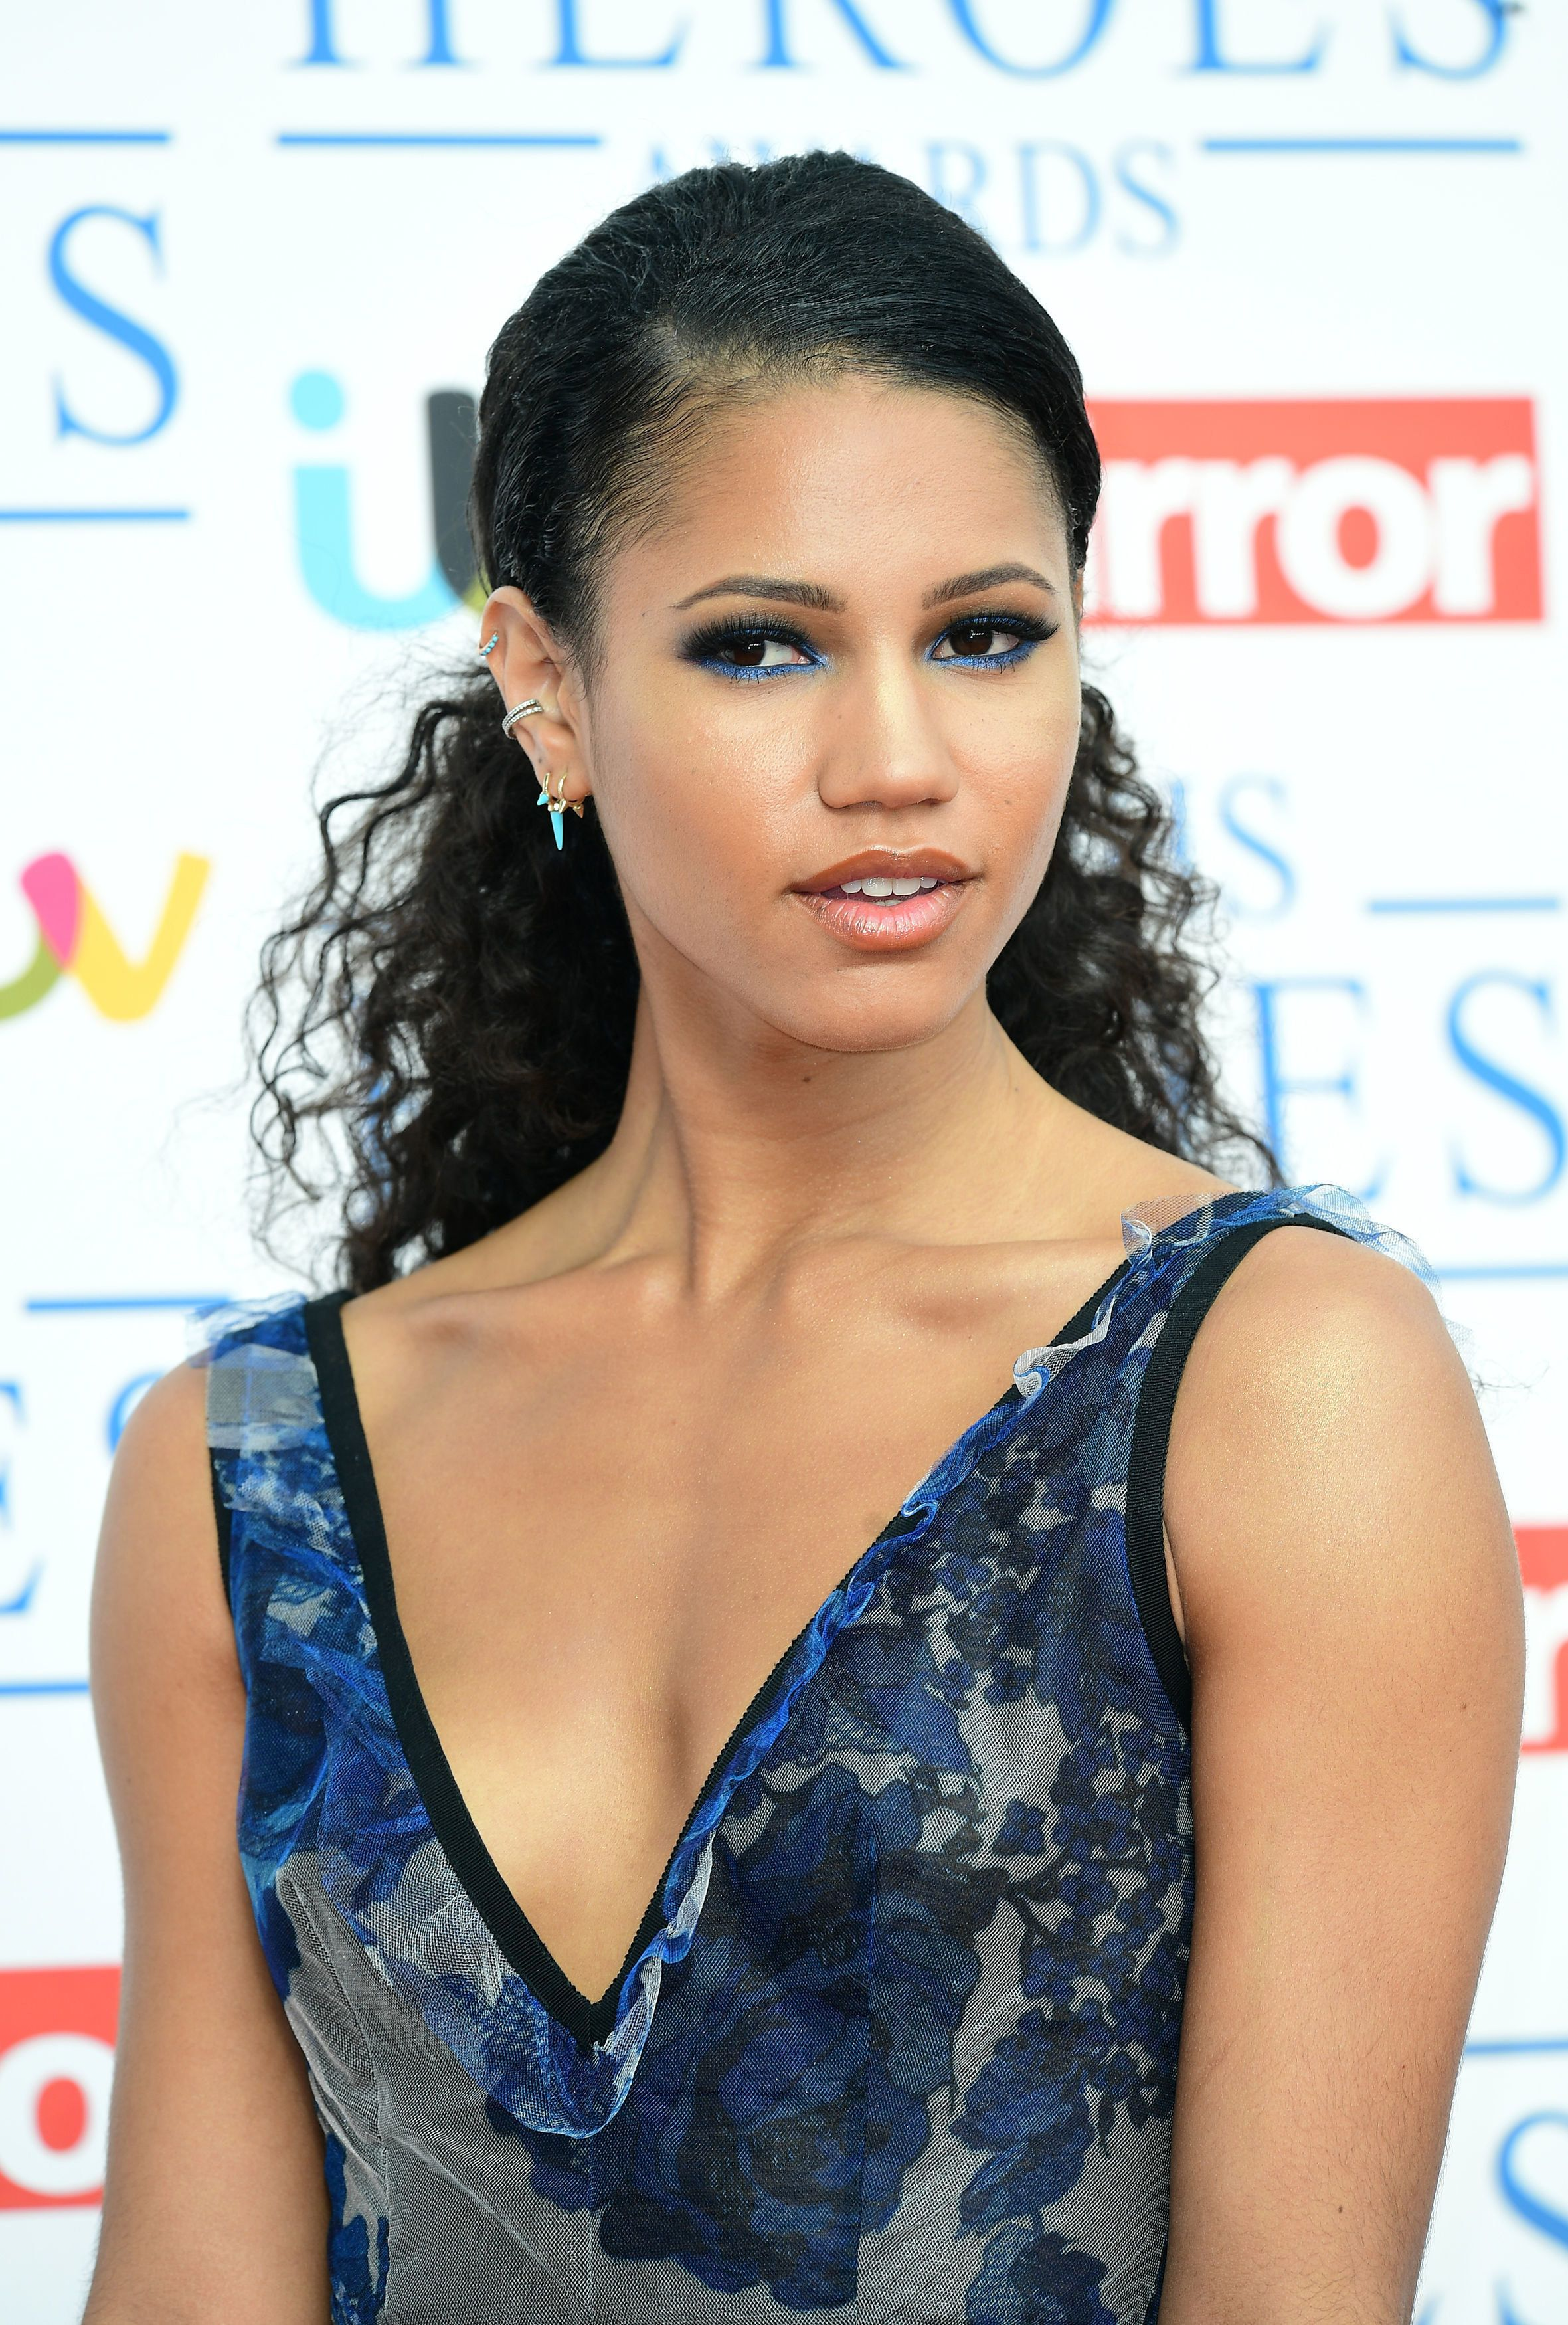 Who Is Vick Hope? Get To Know The 'Strictly Come Dancing' Star A Little Better